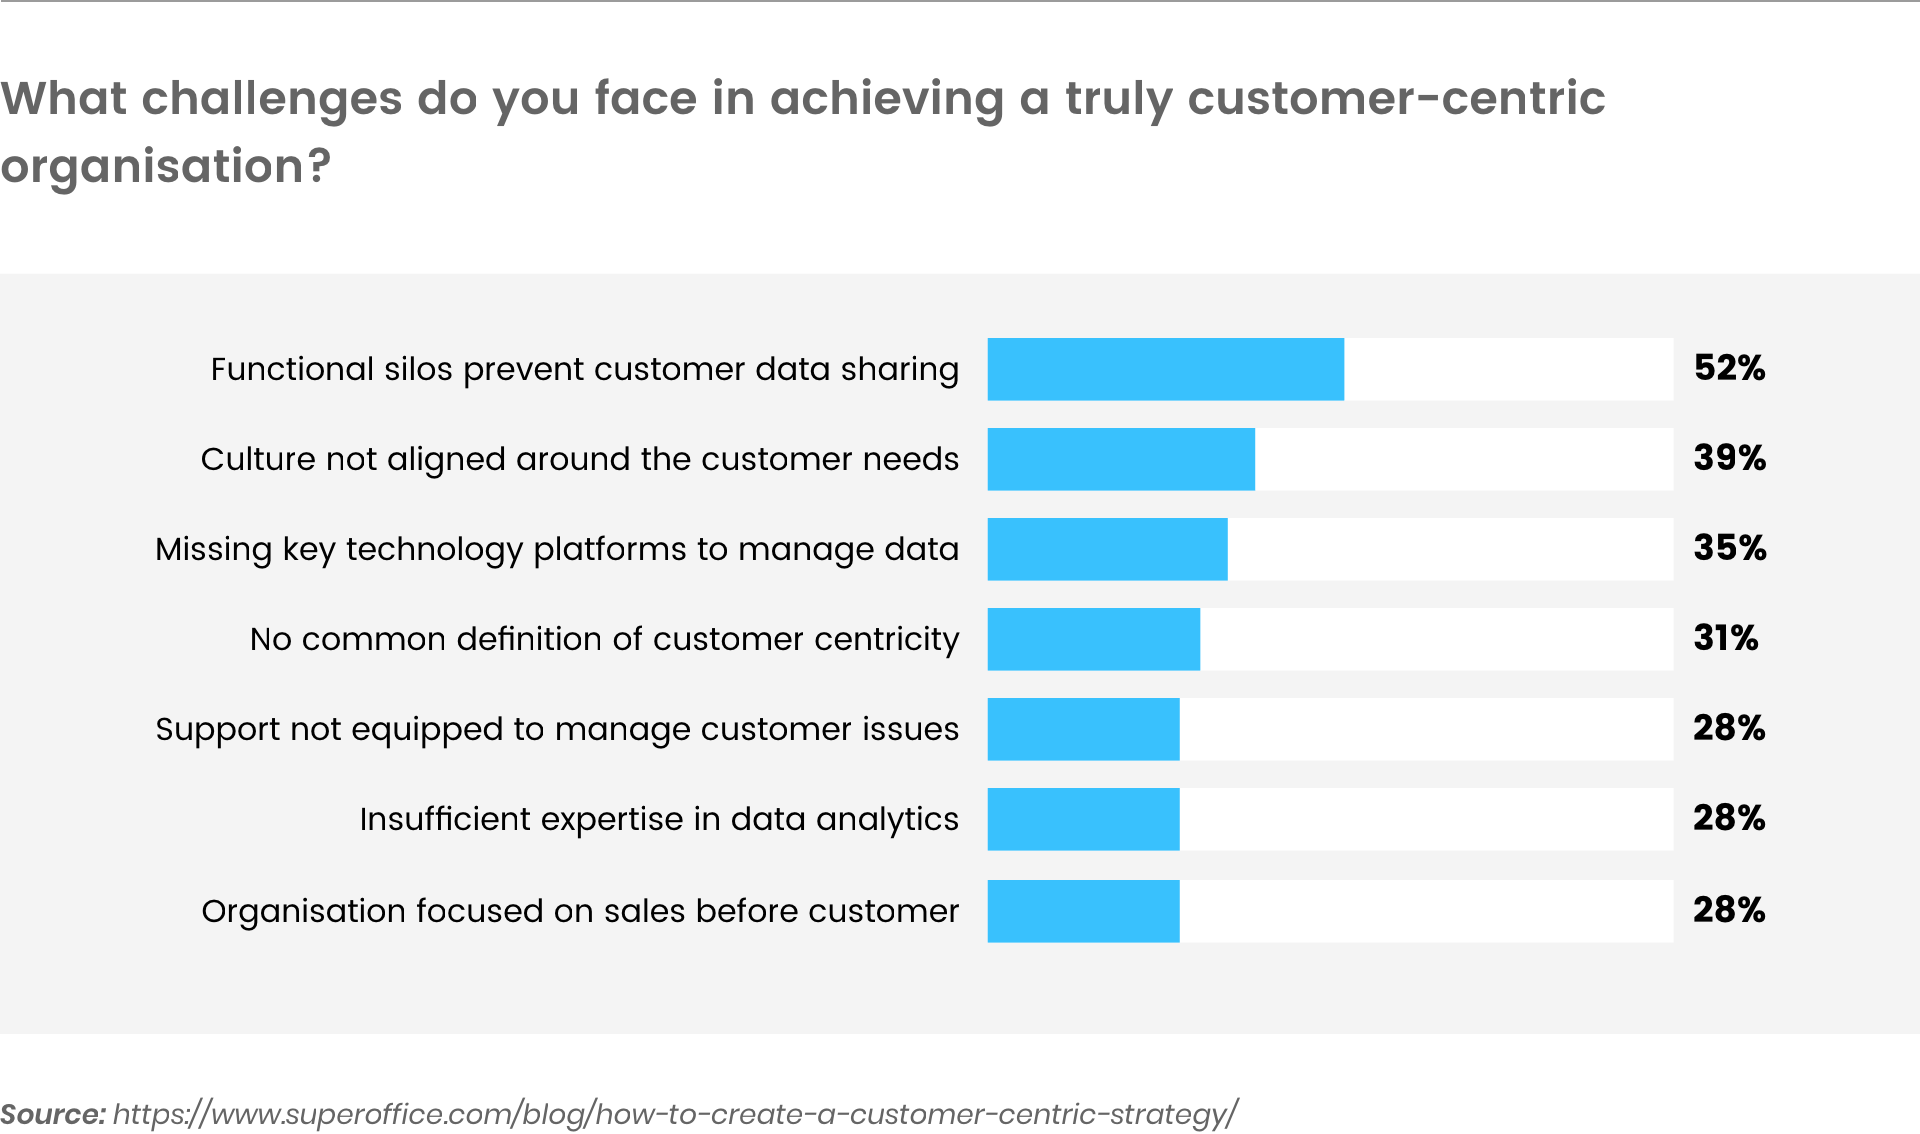 challenges faced by customer-centric organizations